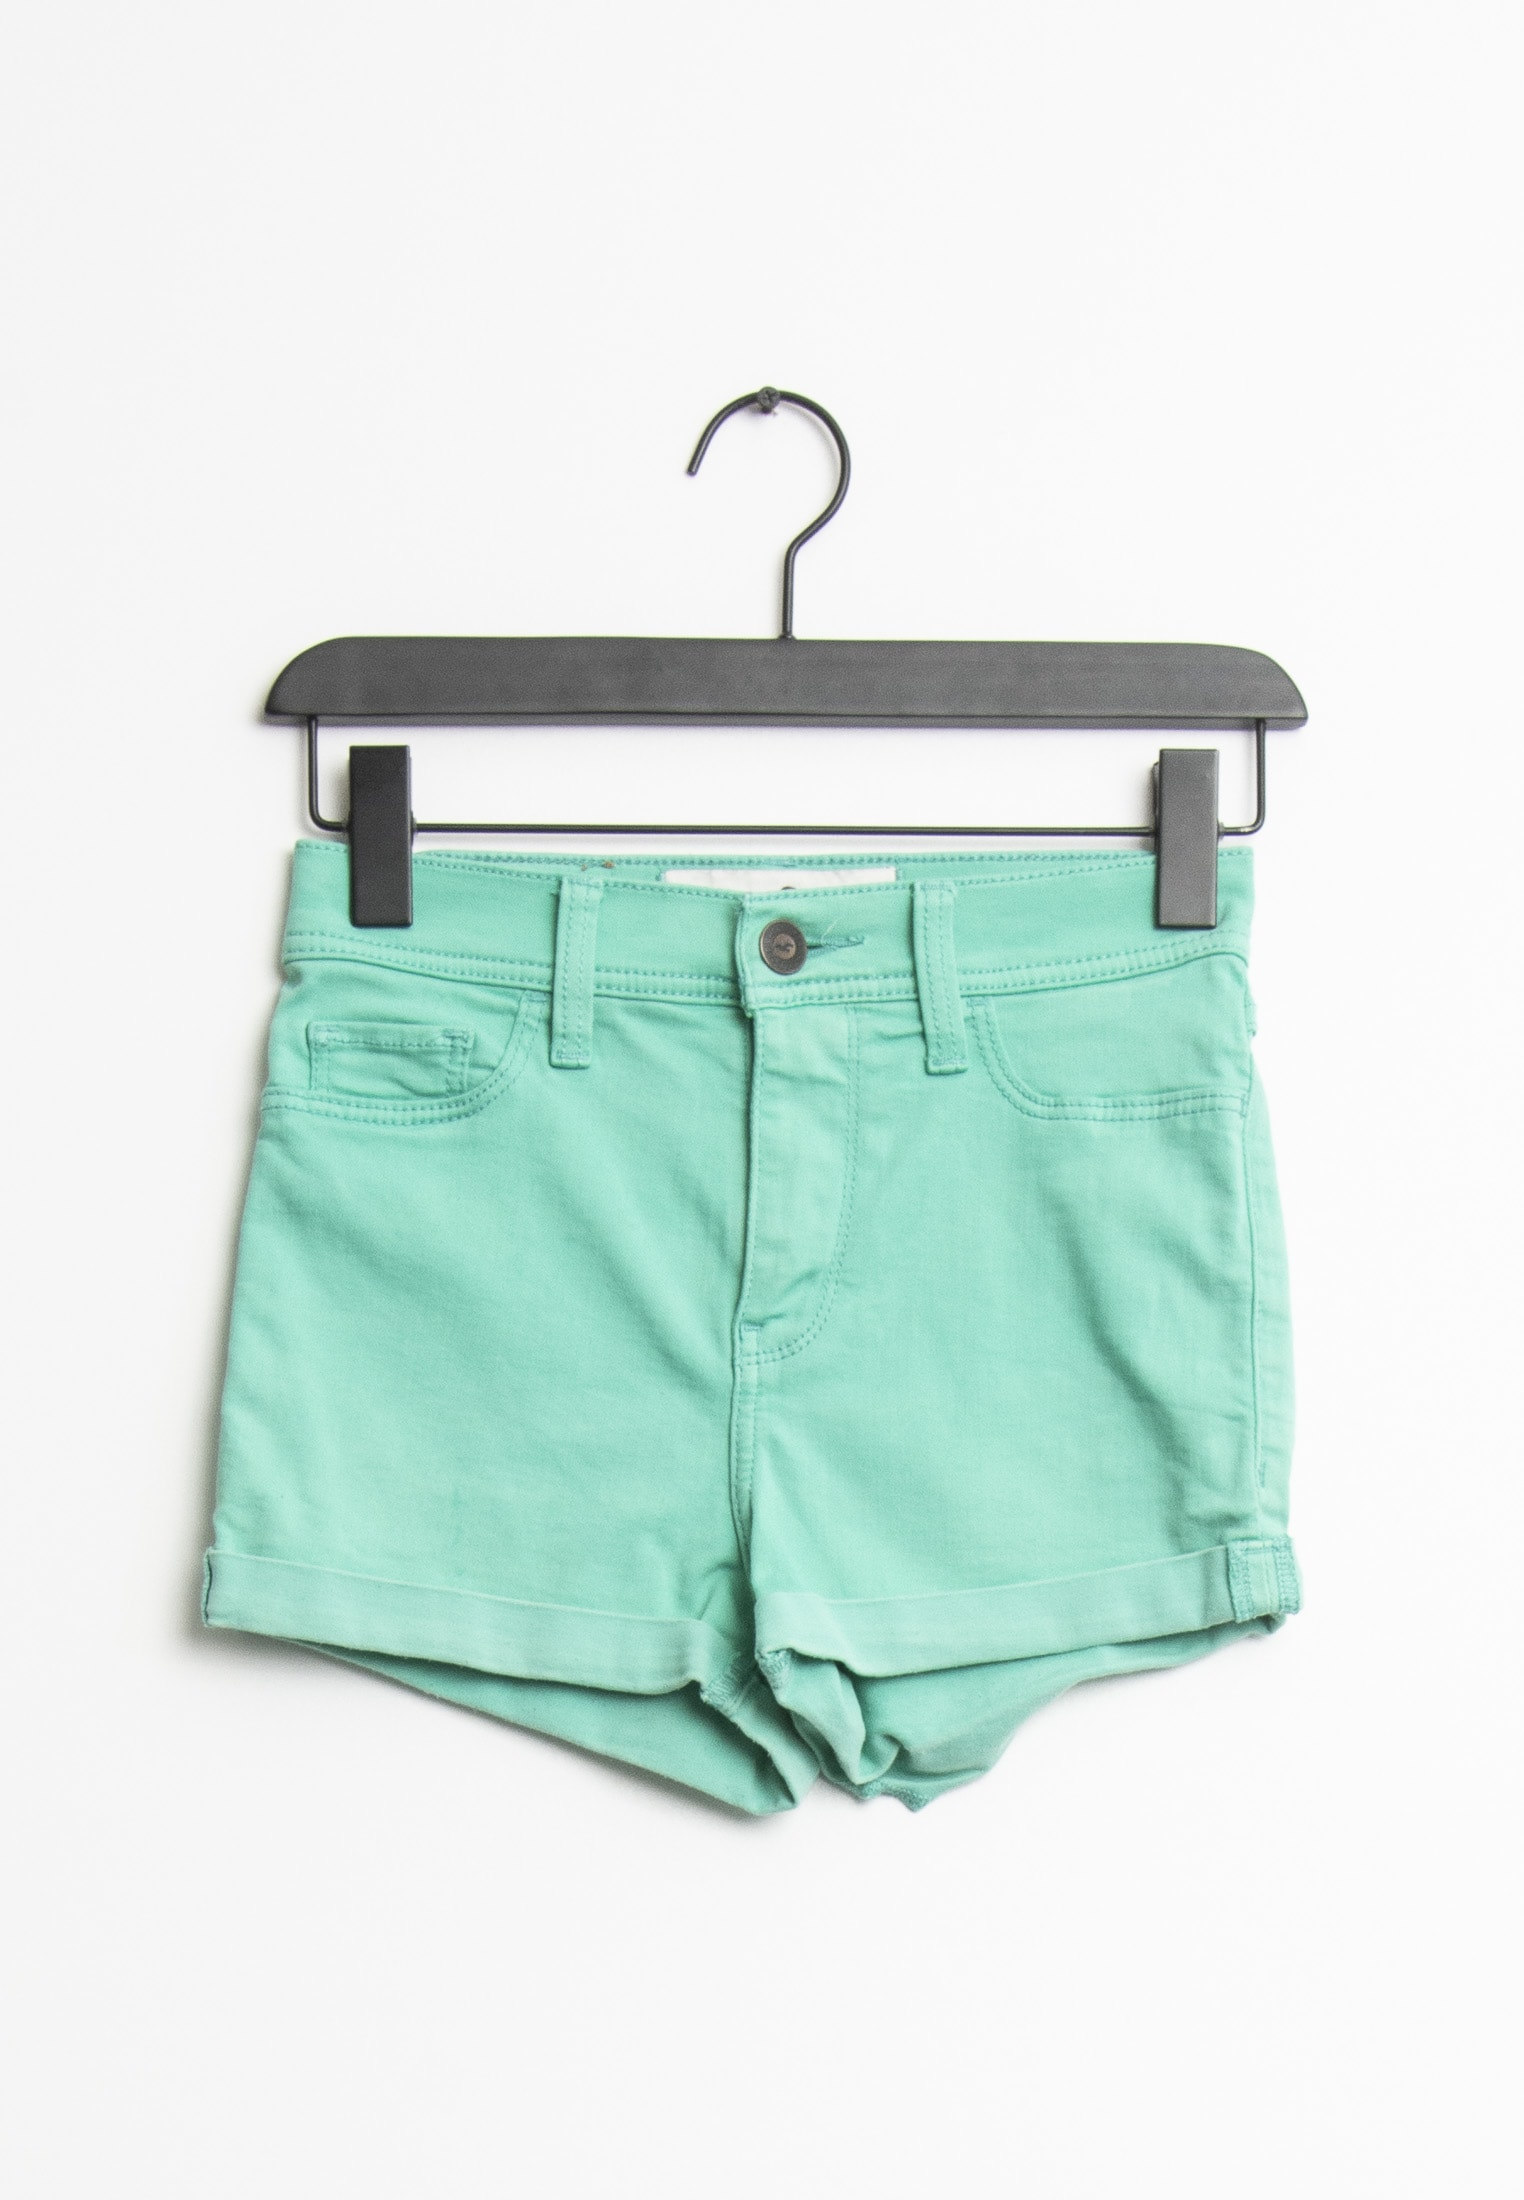 Hollister Co. shorts, grøn, 23